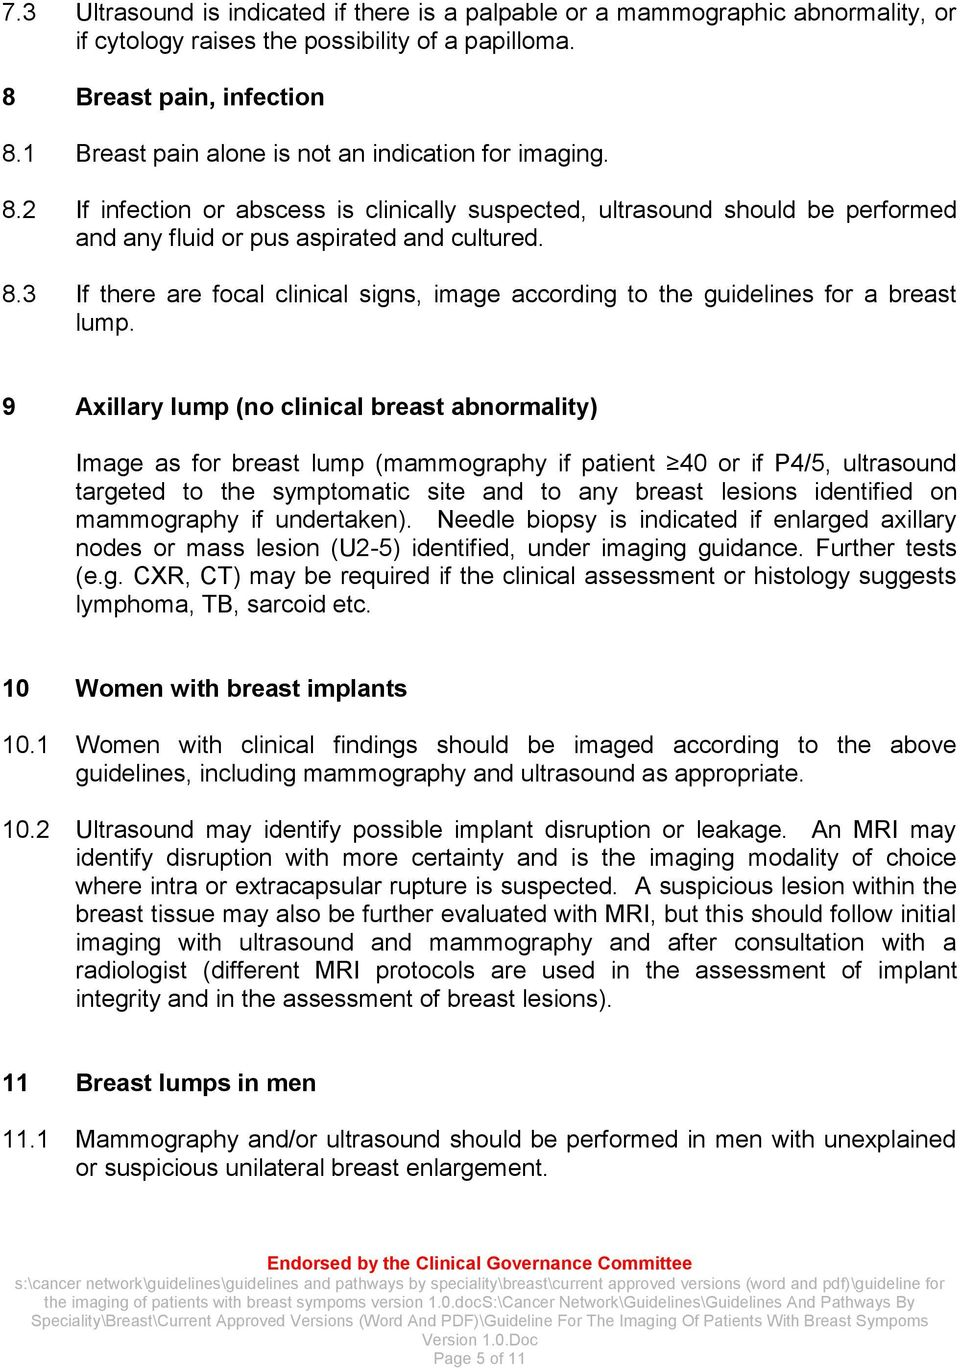 9 Axillary lump (no clinical breast abnormality) Image as for breast lump (mammography if patient 40 or if P4/5, ultrasound targeted to the symptomatic site and to any breast lesions identified on